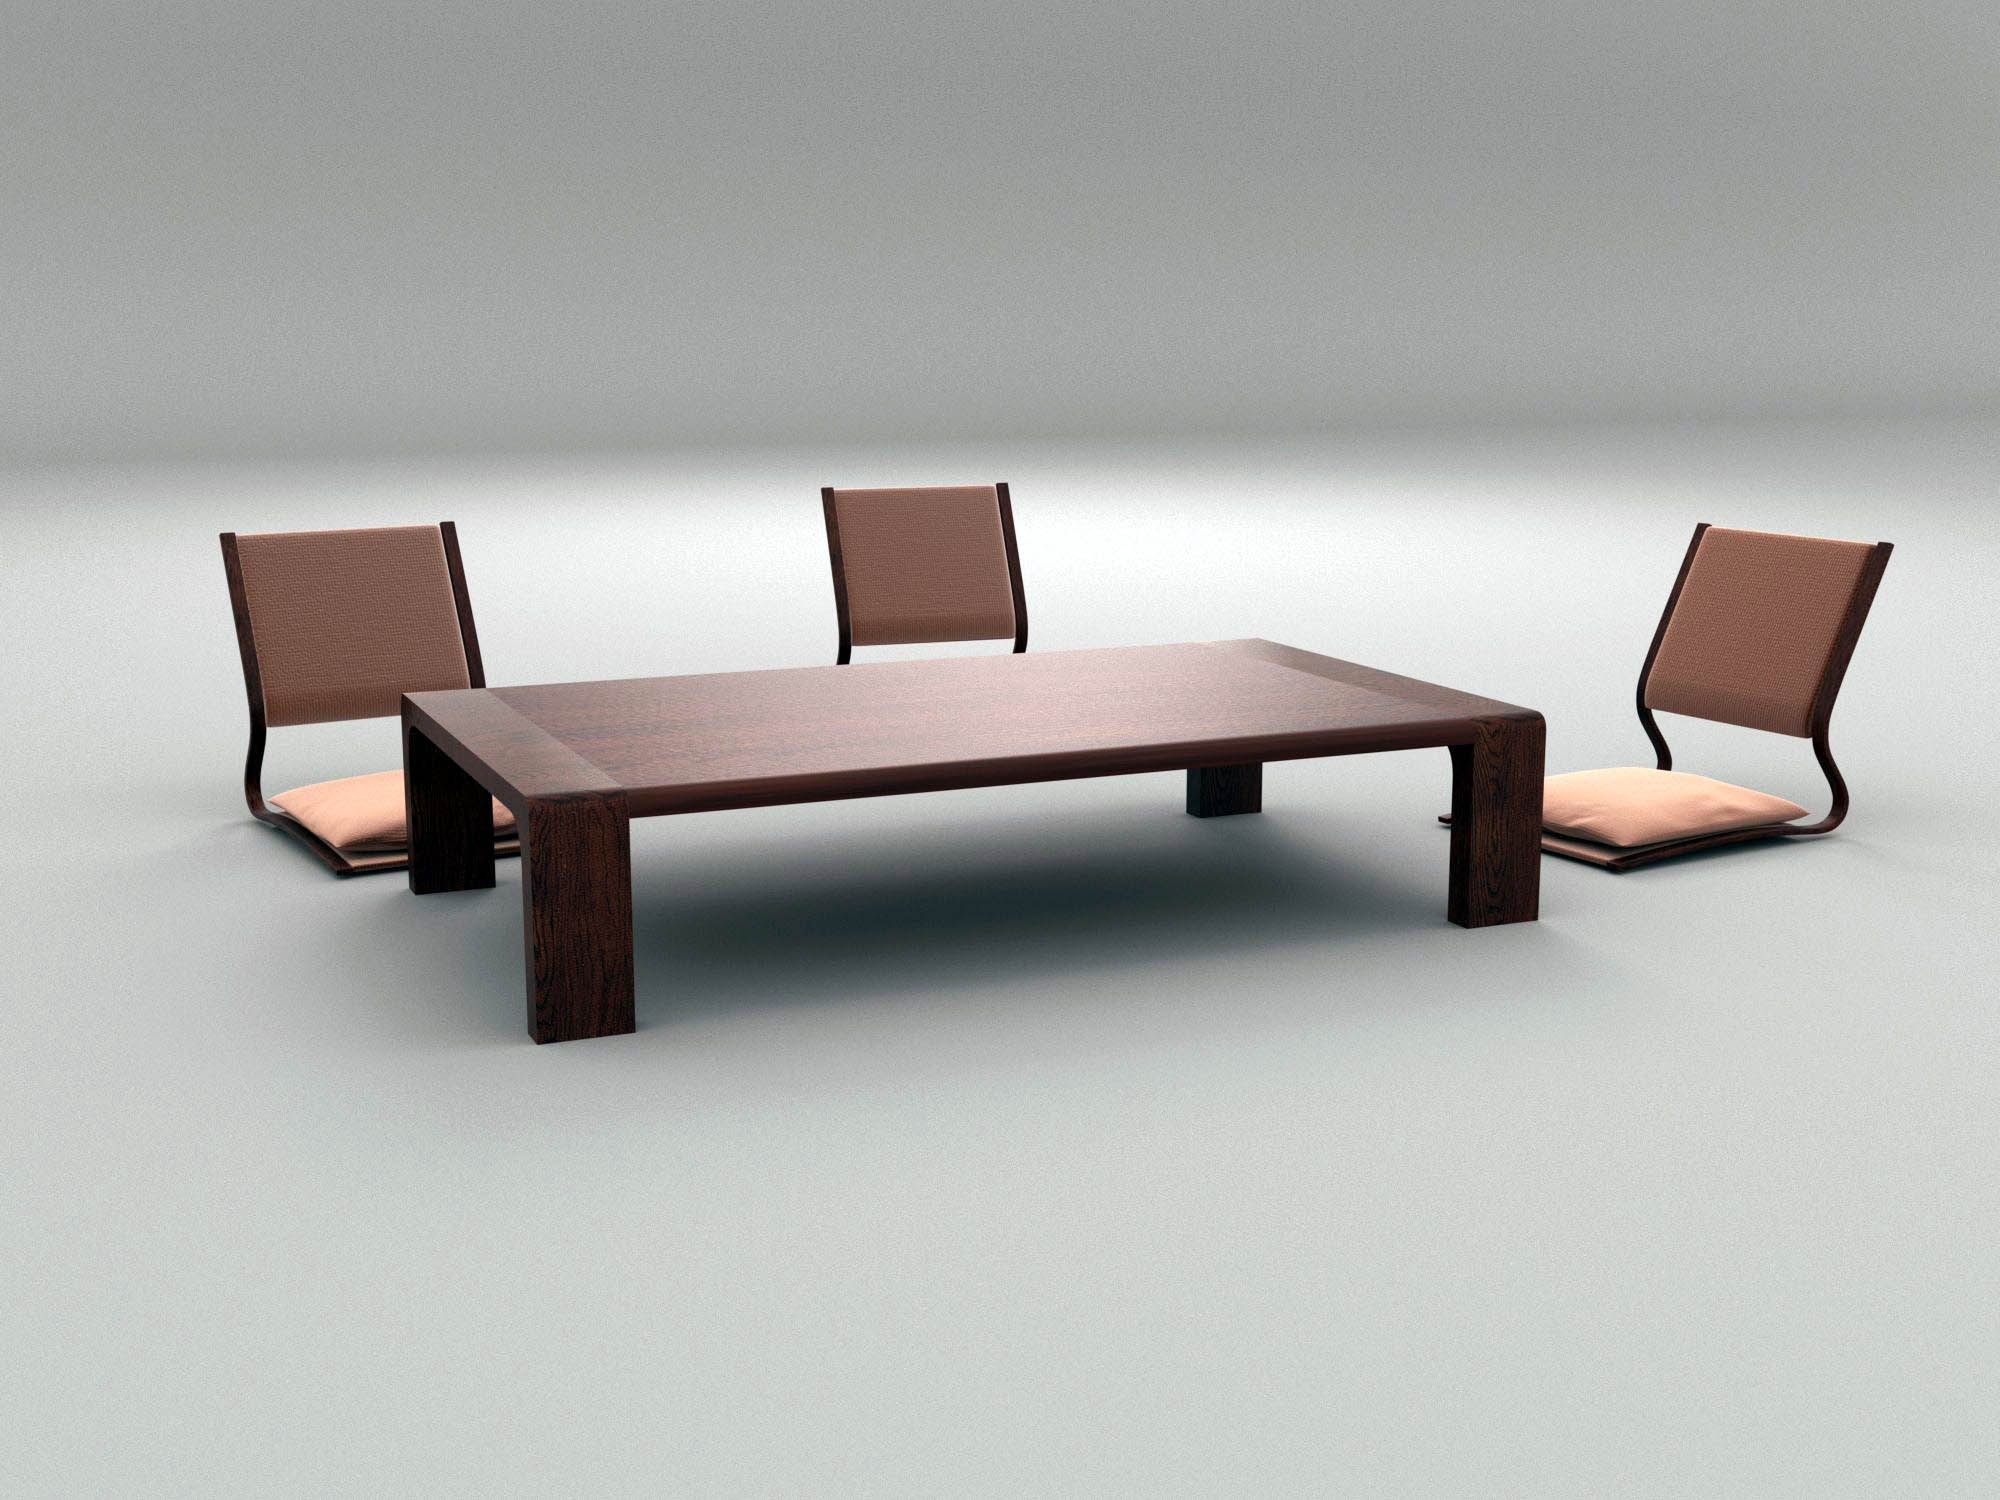 Sophisticated Japanese Dining Table Suggestions Japanese Dining Table Dining Table Decor Low Dining Table